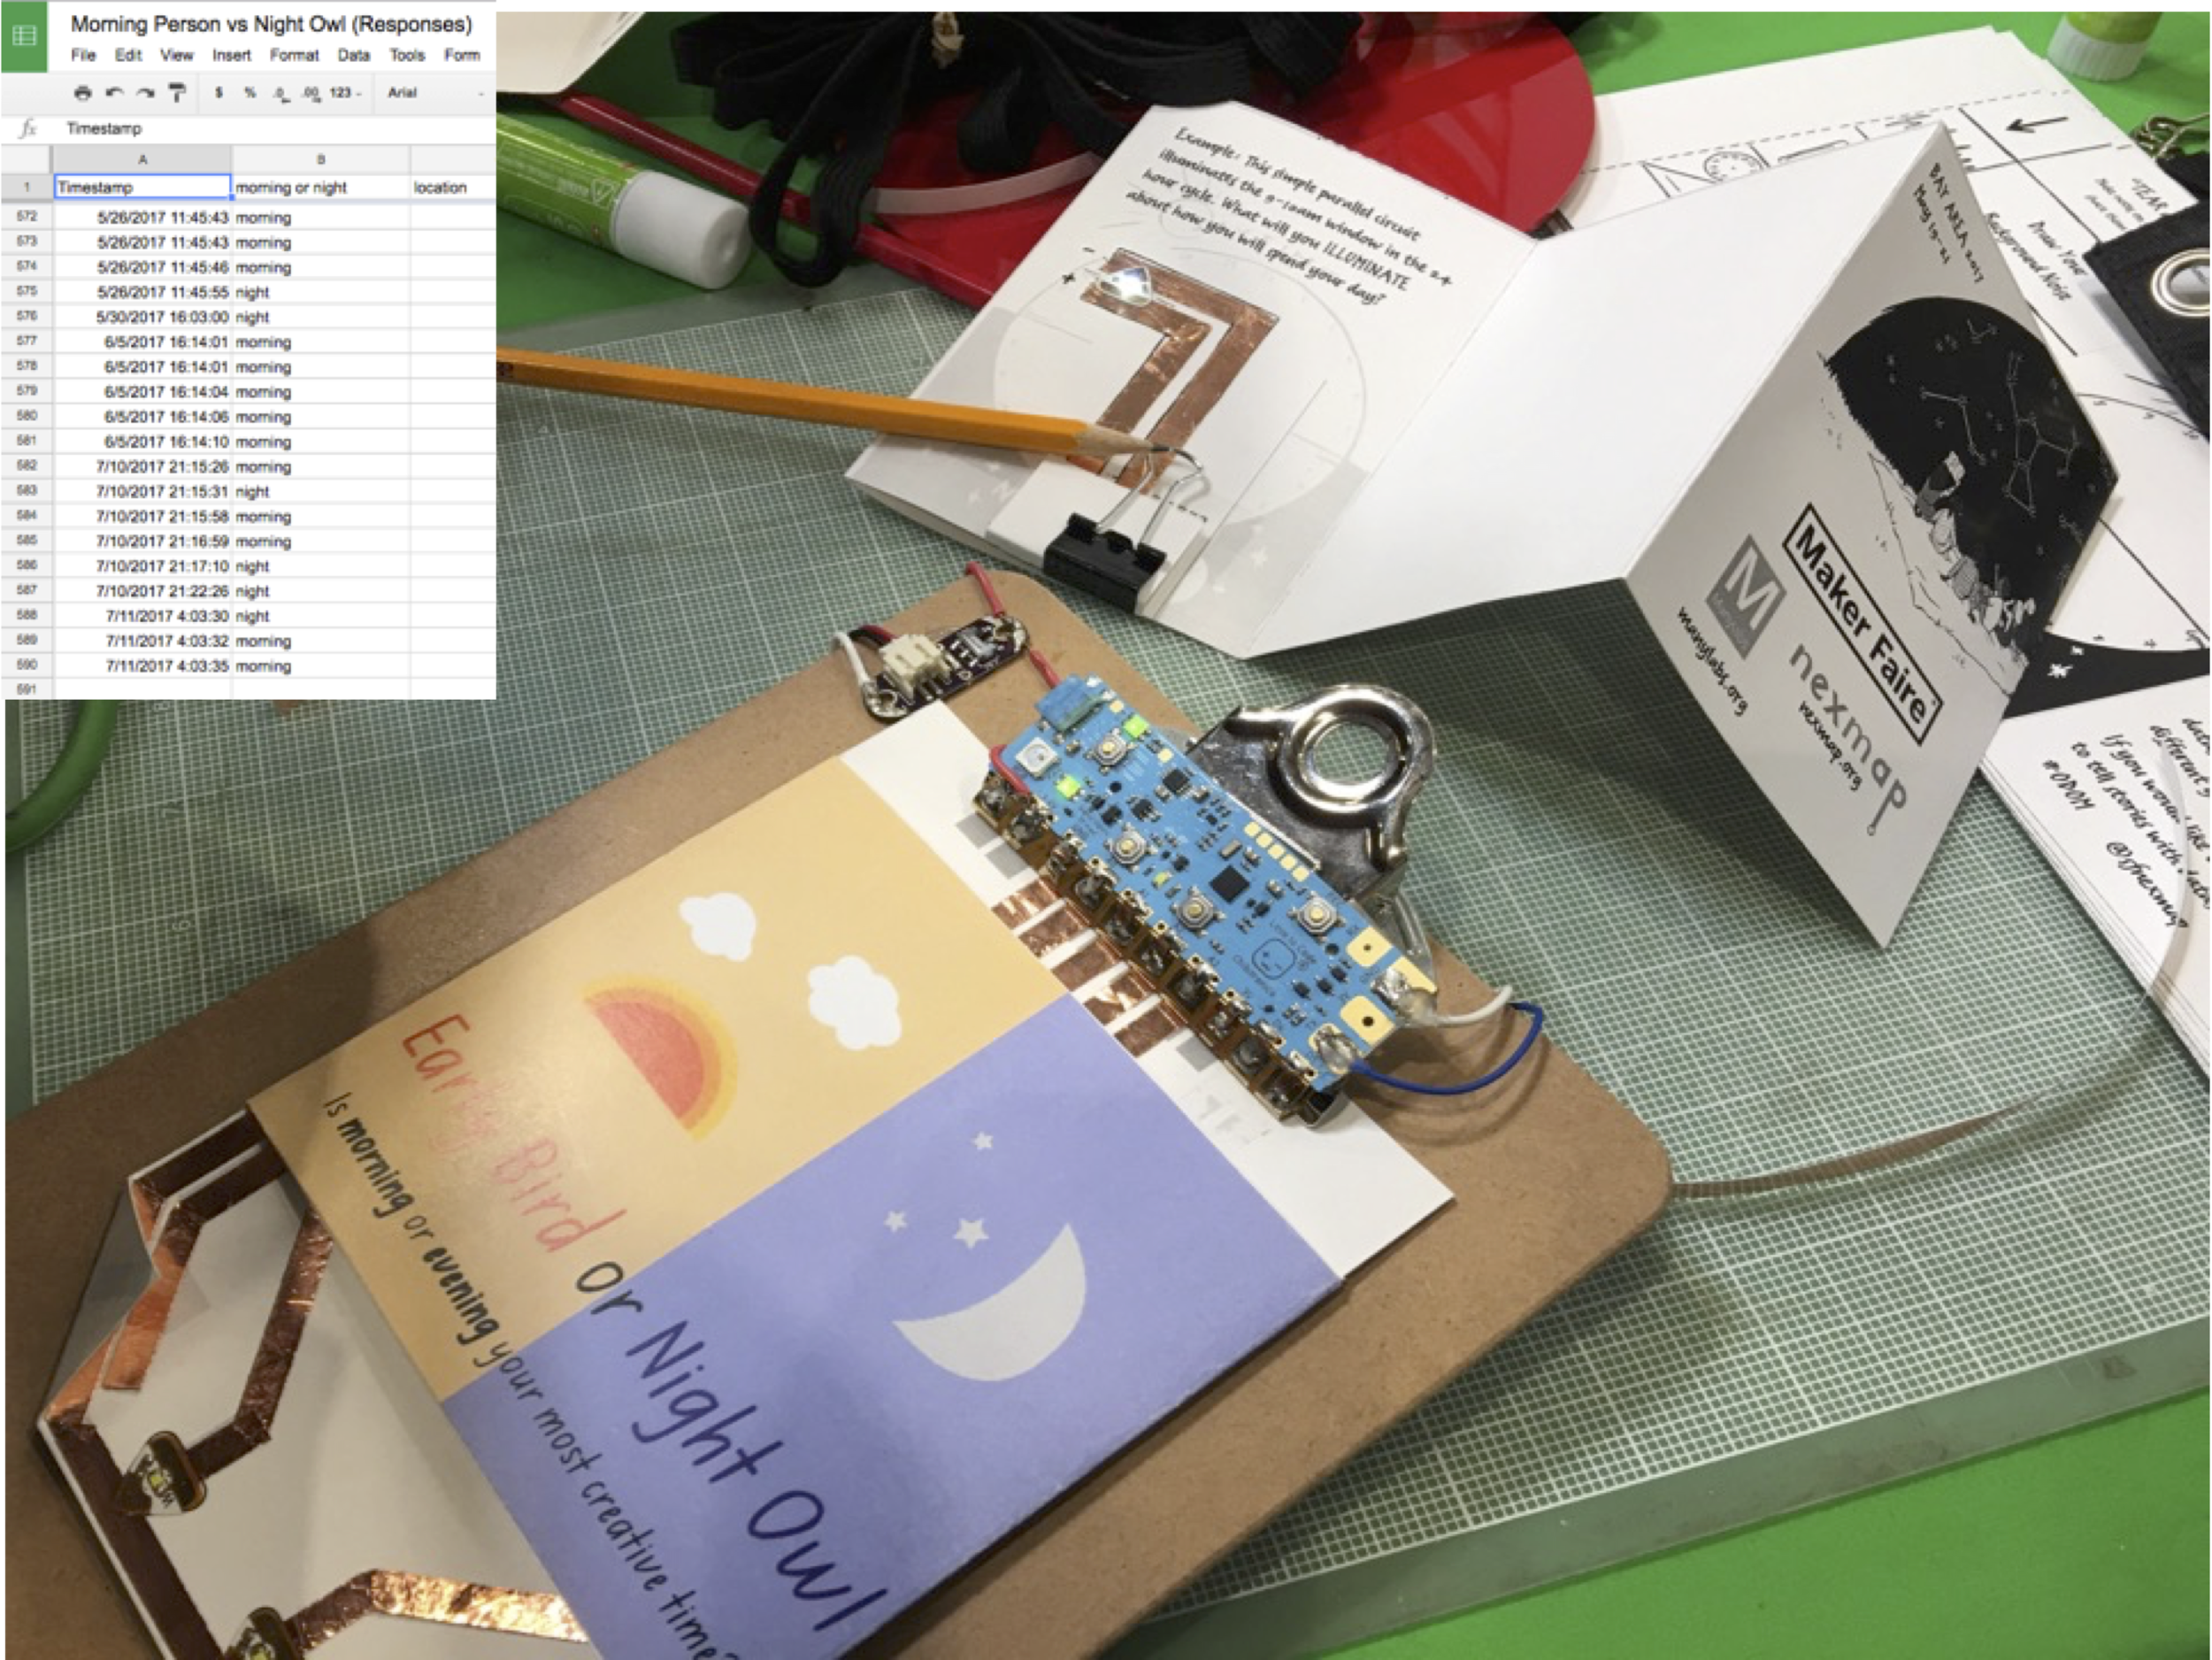 Early Bird or a Night Owl? When are you most creative?   A poll developed for our work with the Fluency Project at Carnegie Mellon's CREATE LAB and shared at Bay Area Maker Faire 2017.